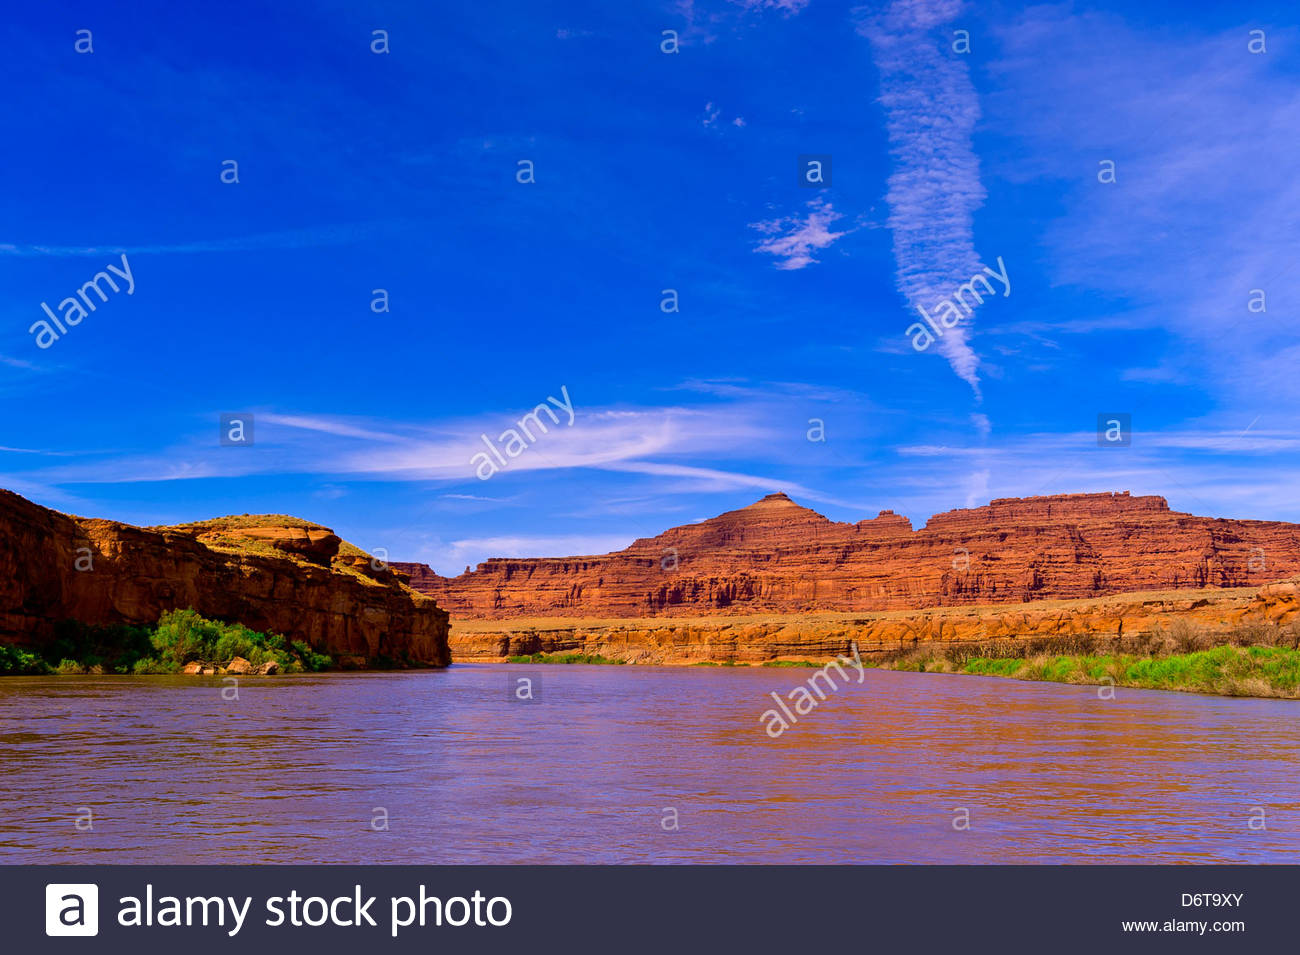 Pyramid Butte, Meander Canyon section of the Colorado River, near Canyonlands National Park, Utah, USA. - Stock Image